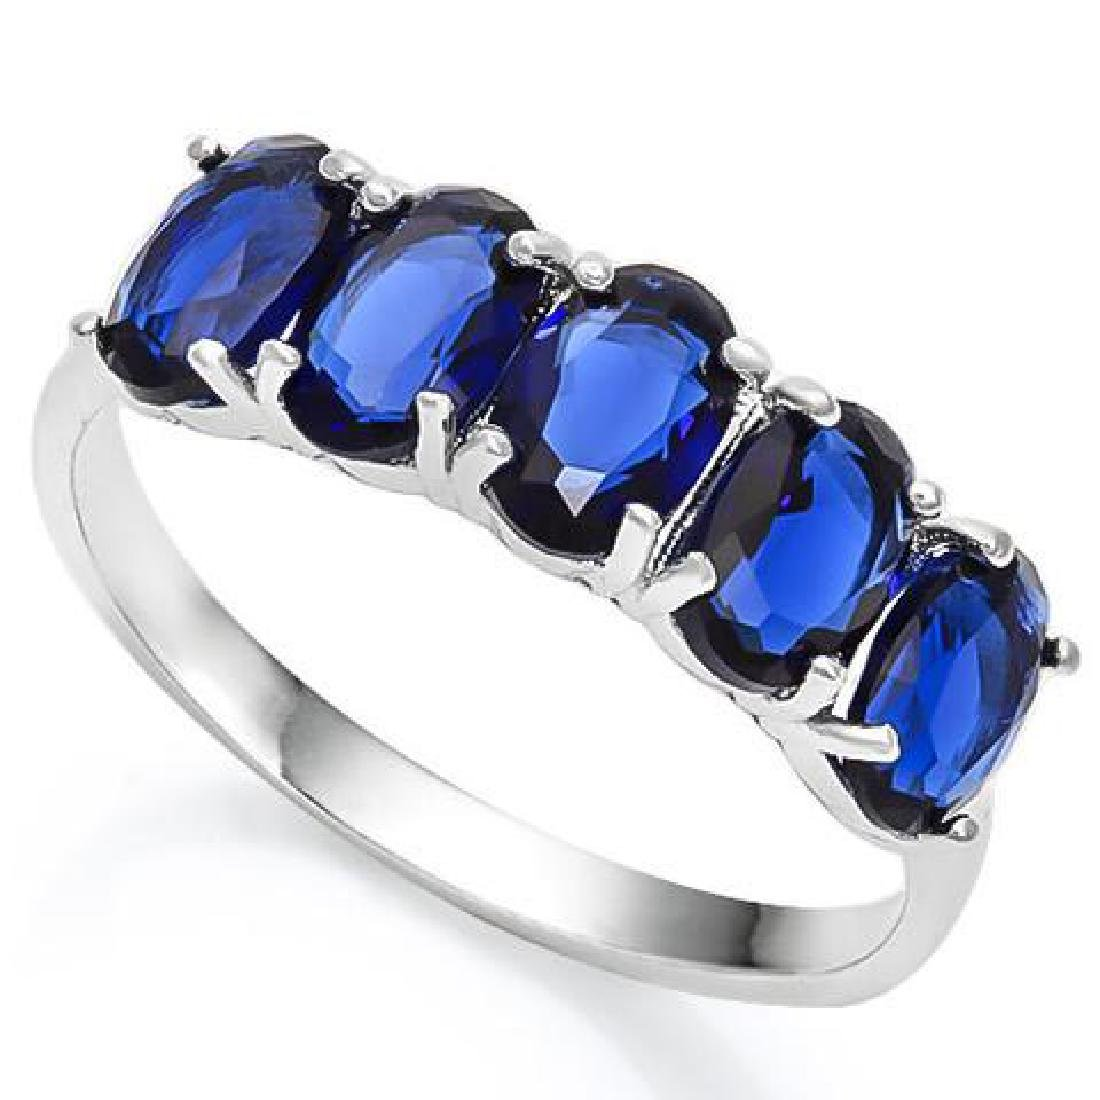 2 CARAT CREATED BLUE SAPPHIRE 925 STERLING SILVER RING